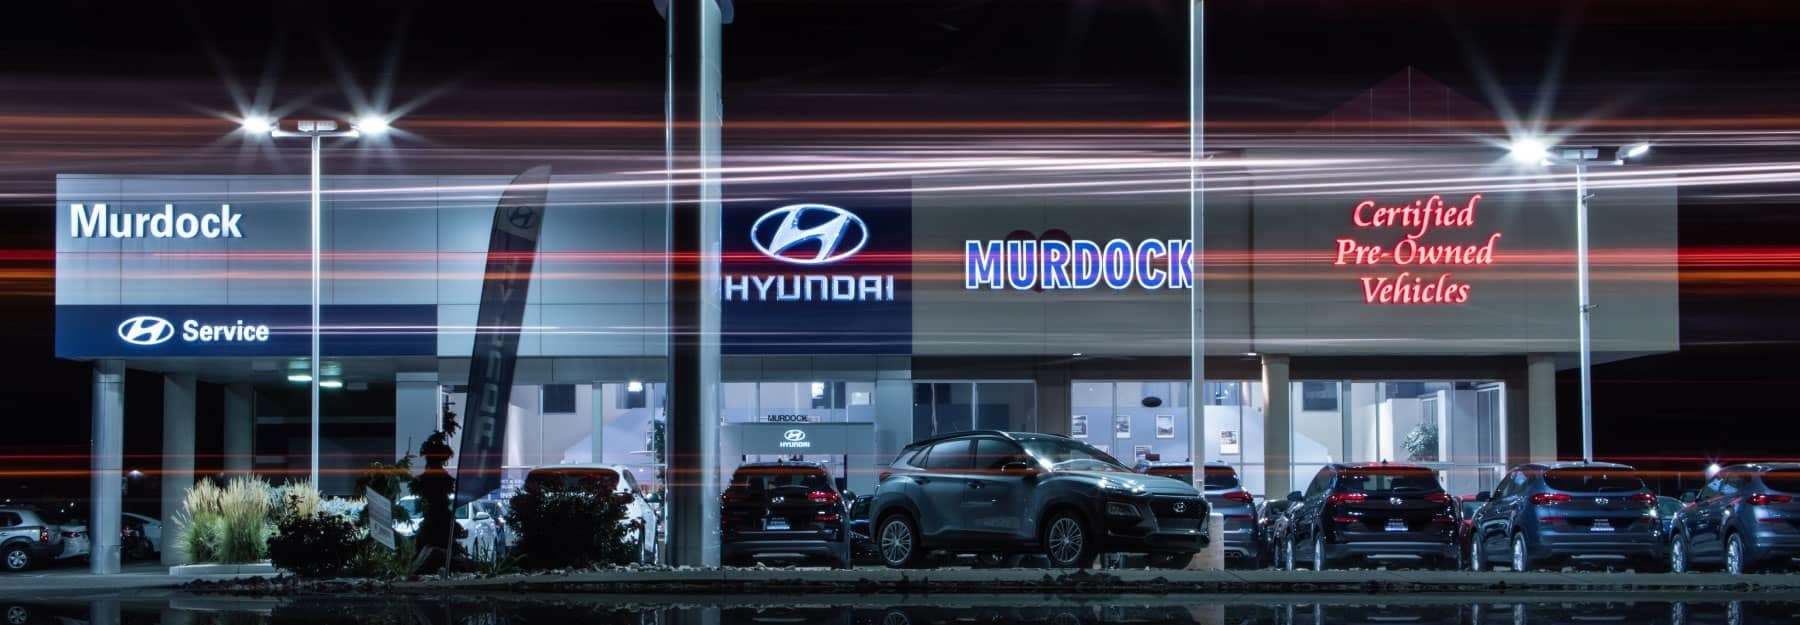 Murdock Hyundai of Logan